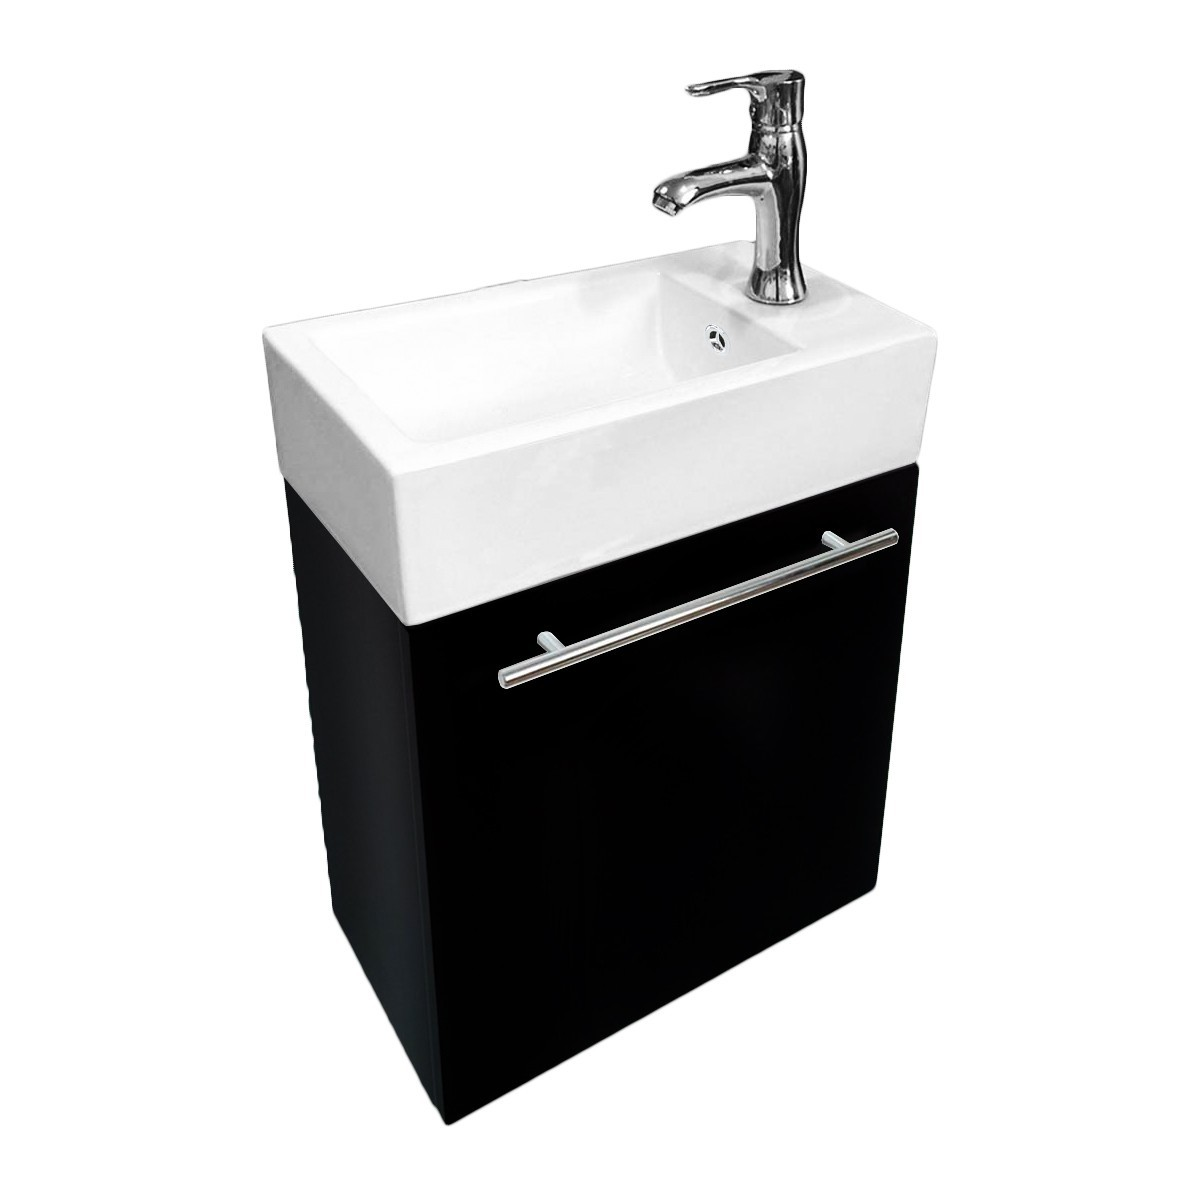 ... U003cPREu003eBathroom Small Wall Mount Vanity Cabinet Sink With Faucet, Drain  And Towel ...